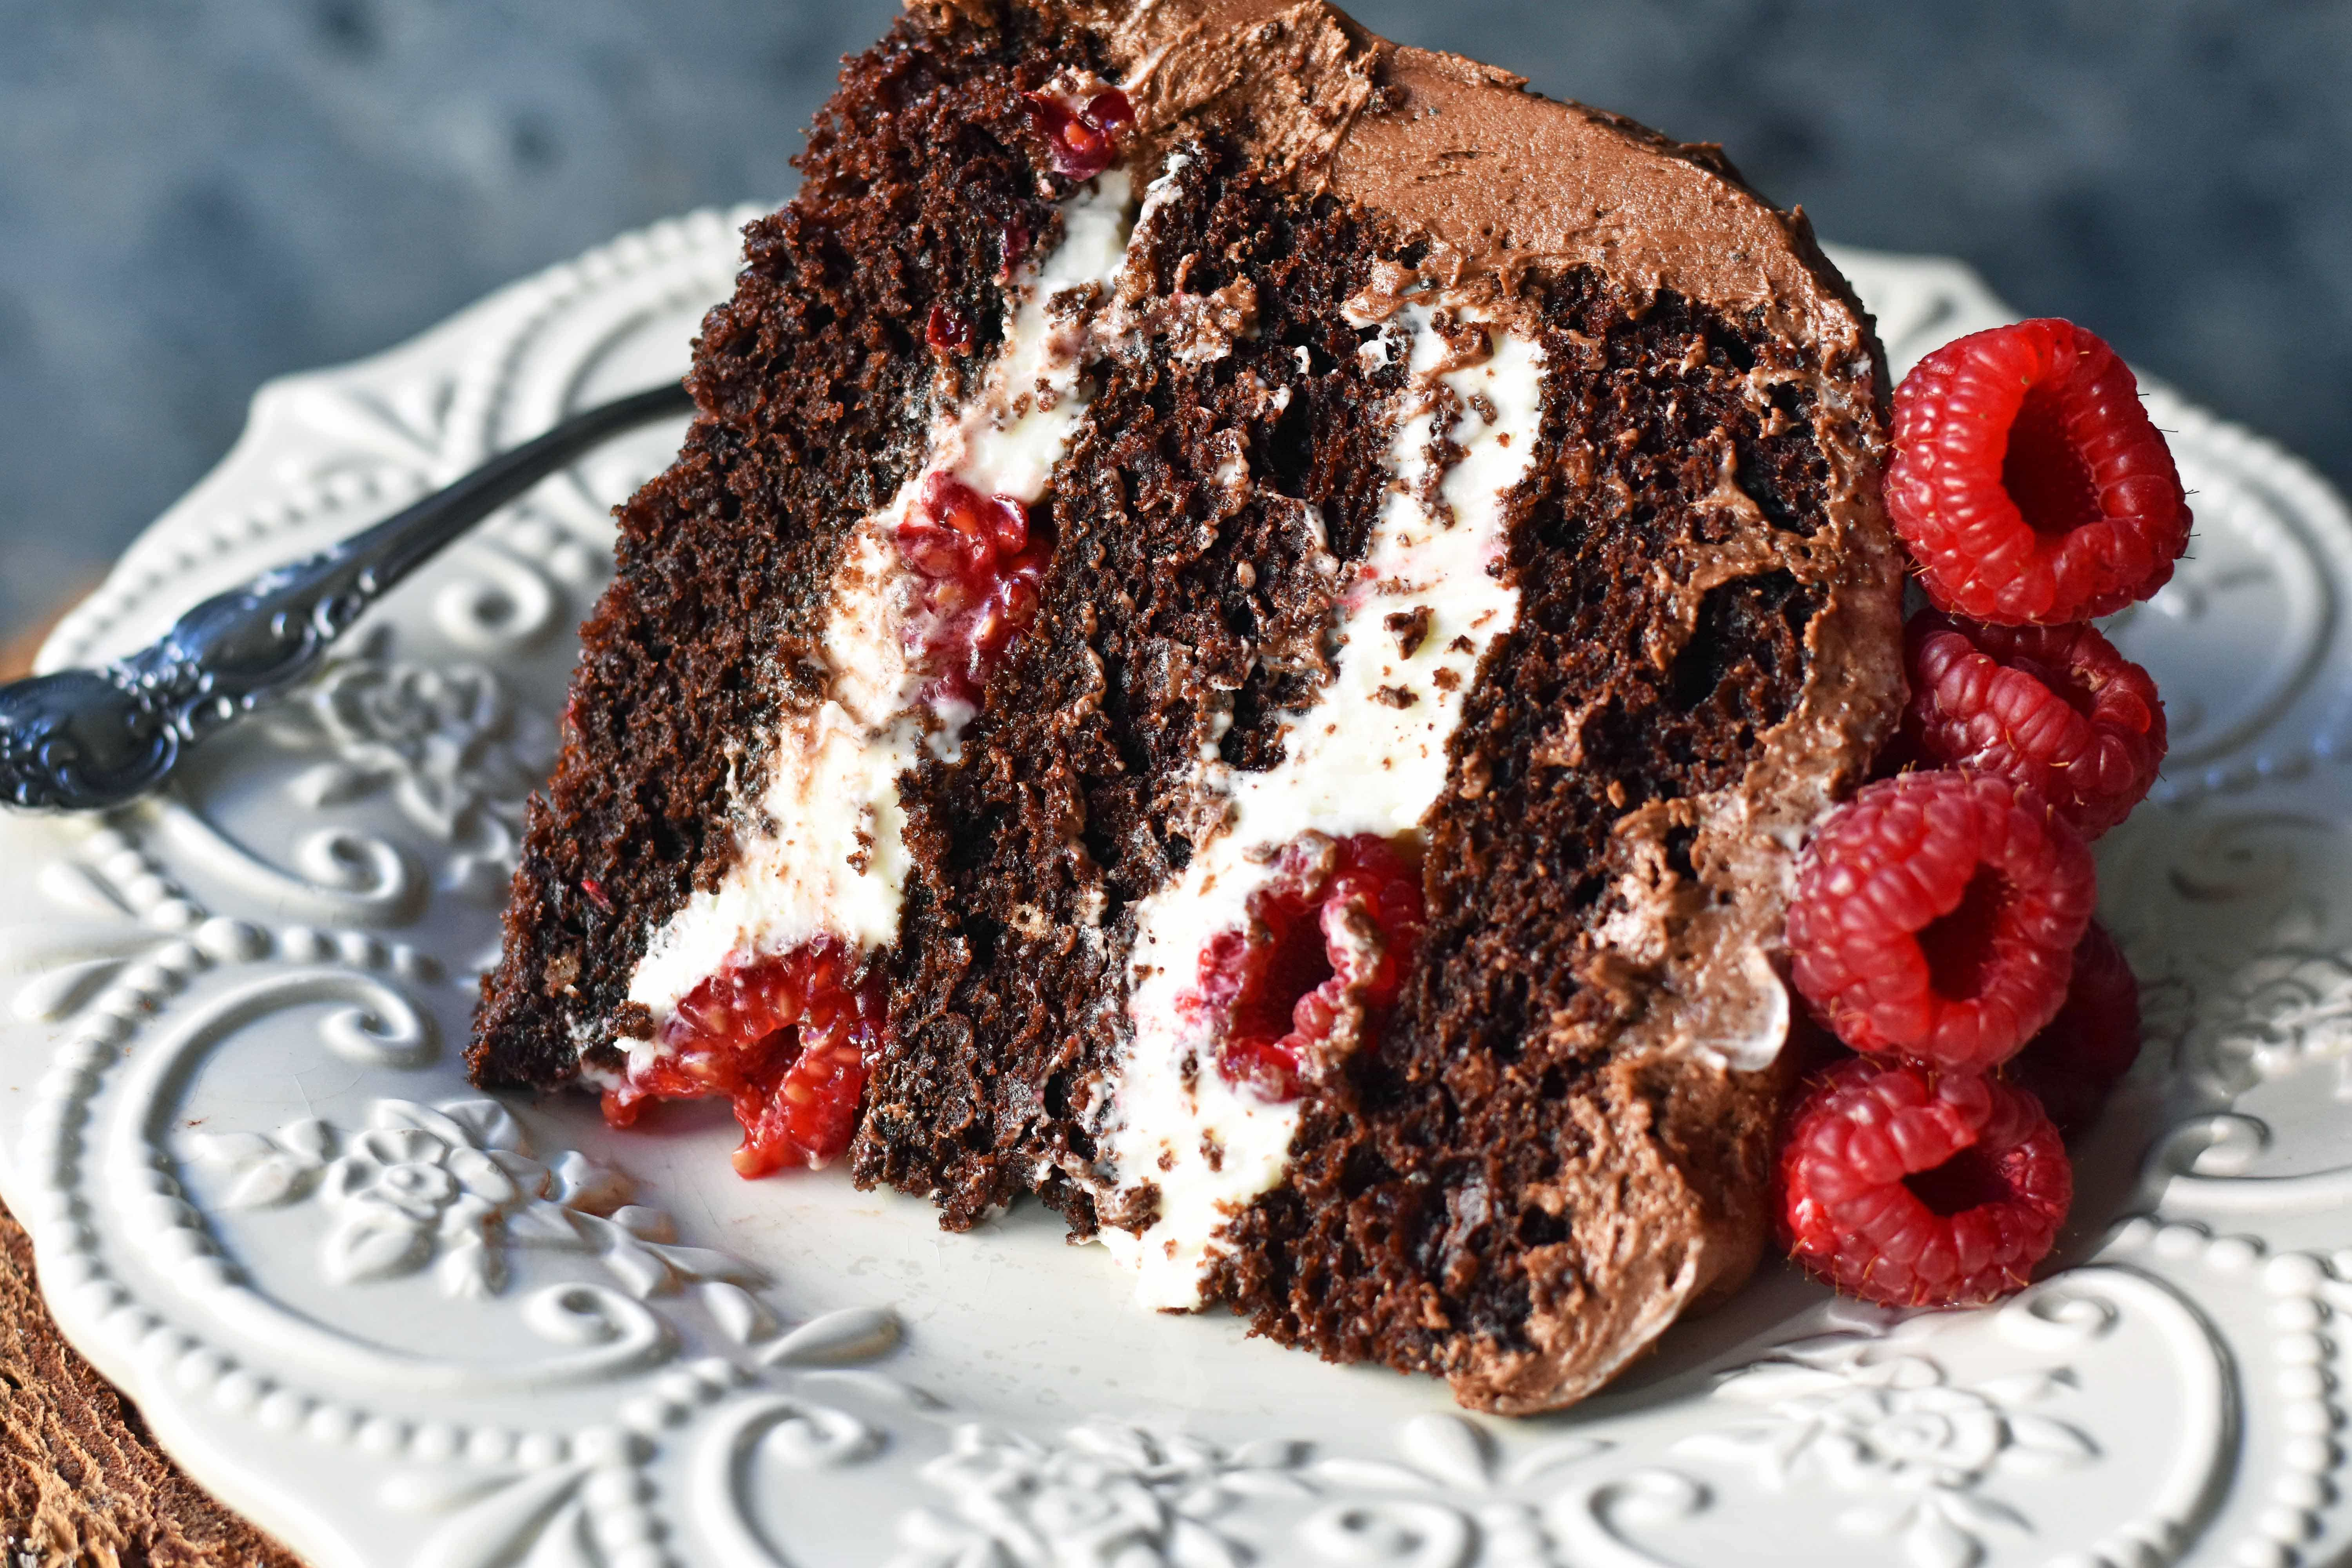 Rich chocolate cake layered with whipped cream cheese raspberry filling, topped with creamy chocolate frosting and fresh raspberries. Homemade BEST EVER Chocolate Cake with sweet whipped cream cheese raspberry filling topped with chocolate buttercream and raspberries. www.modernhoney.com